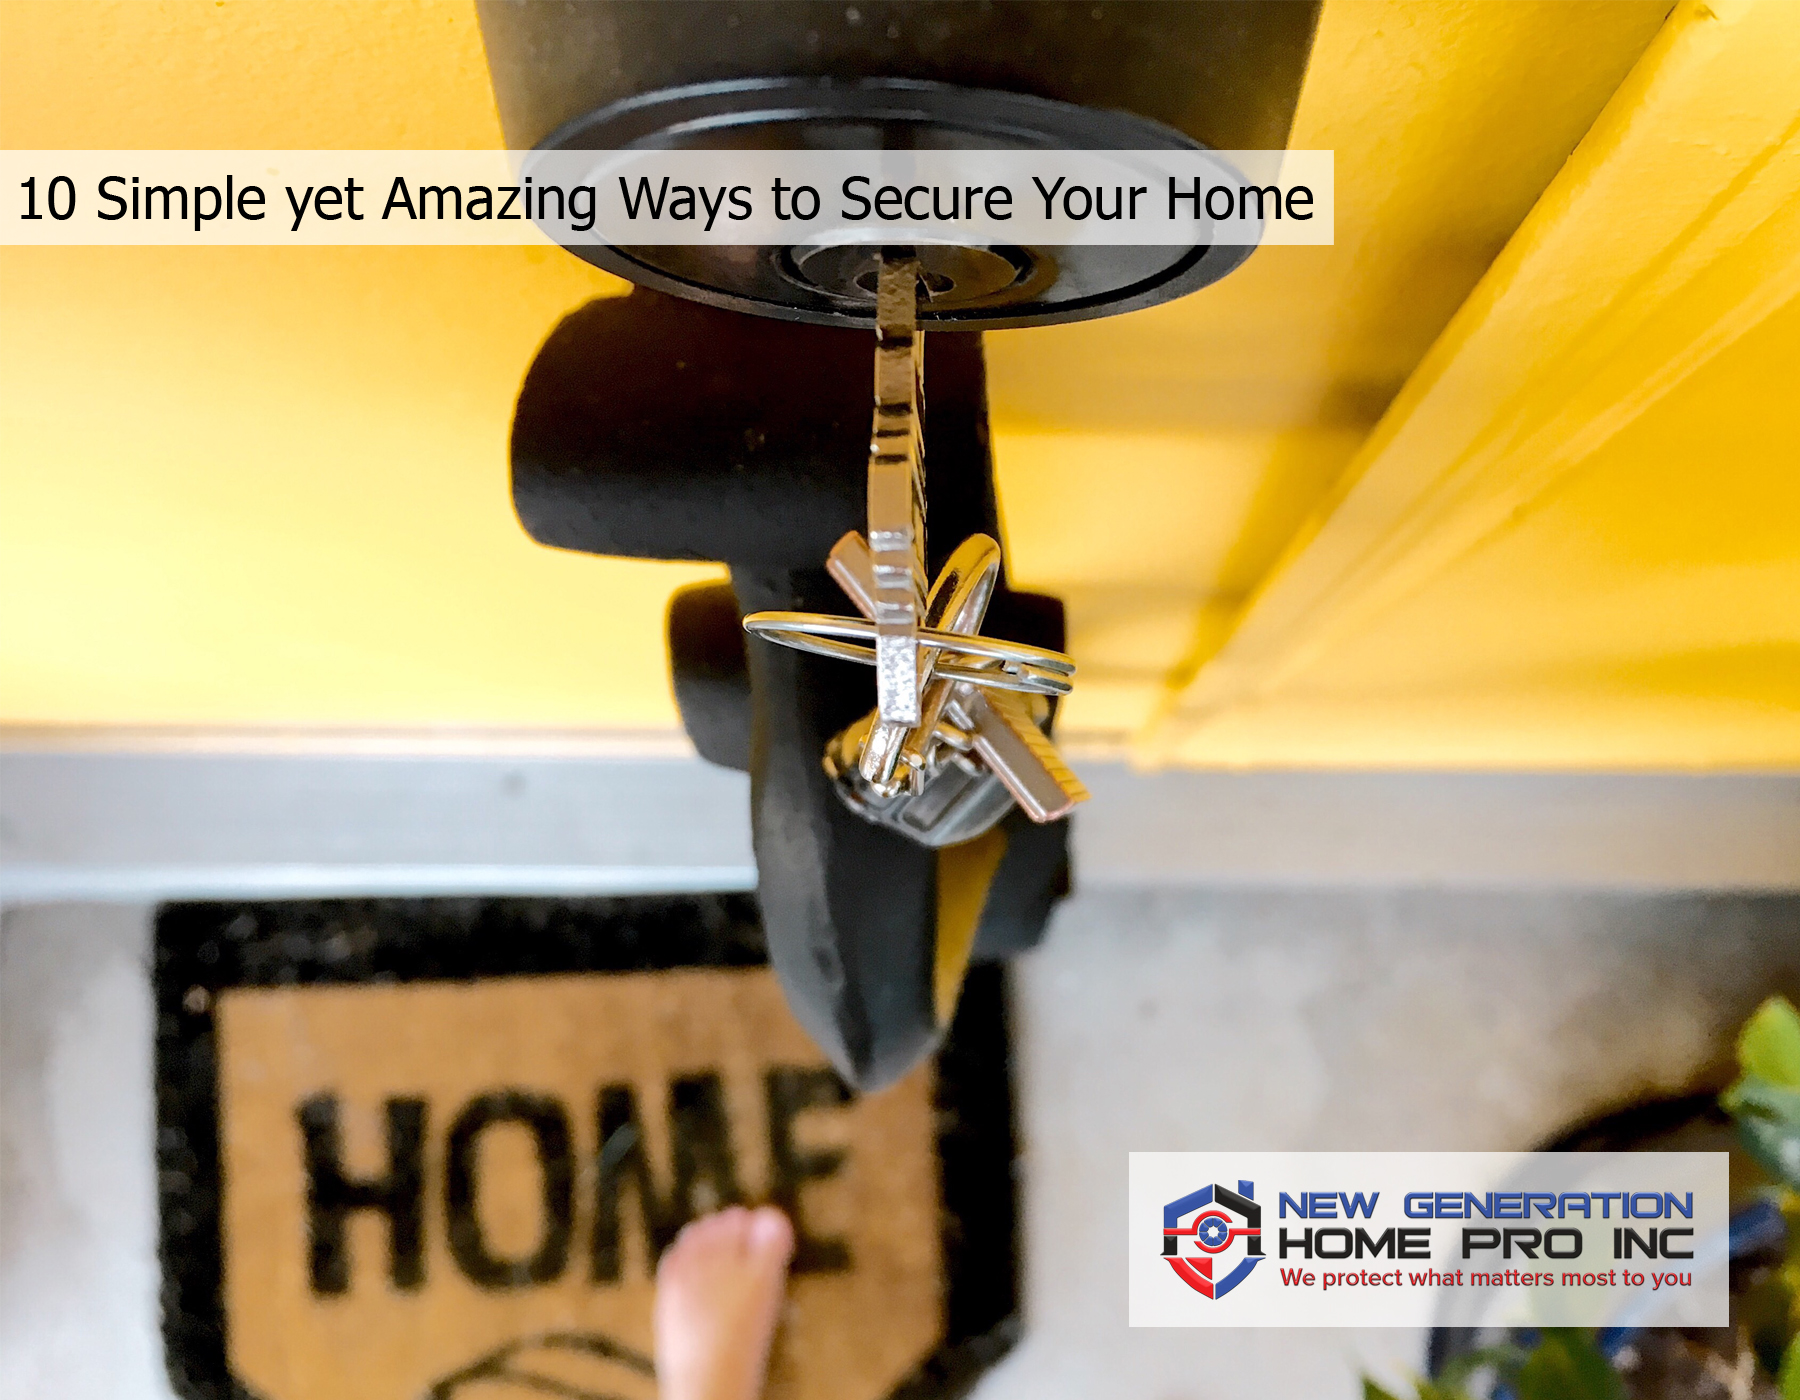 10 Simple yet Amazing Ways to Secure Your Home